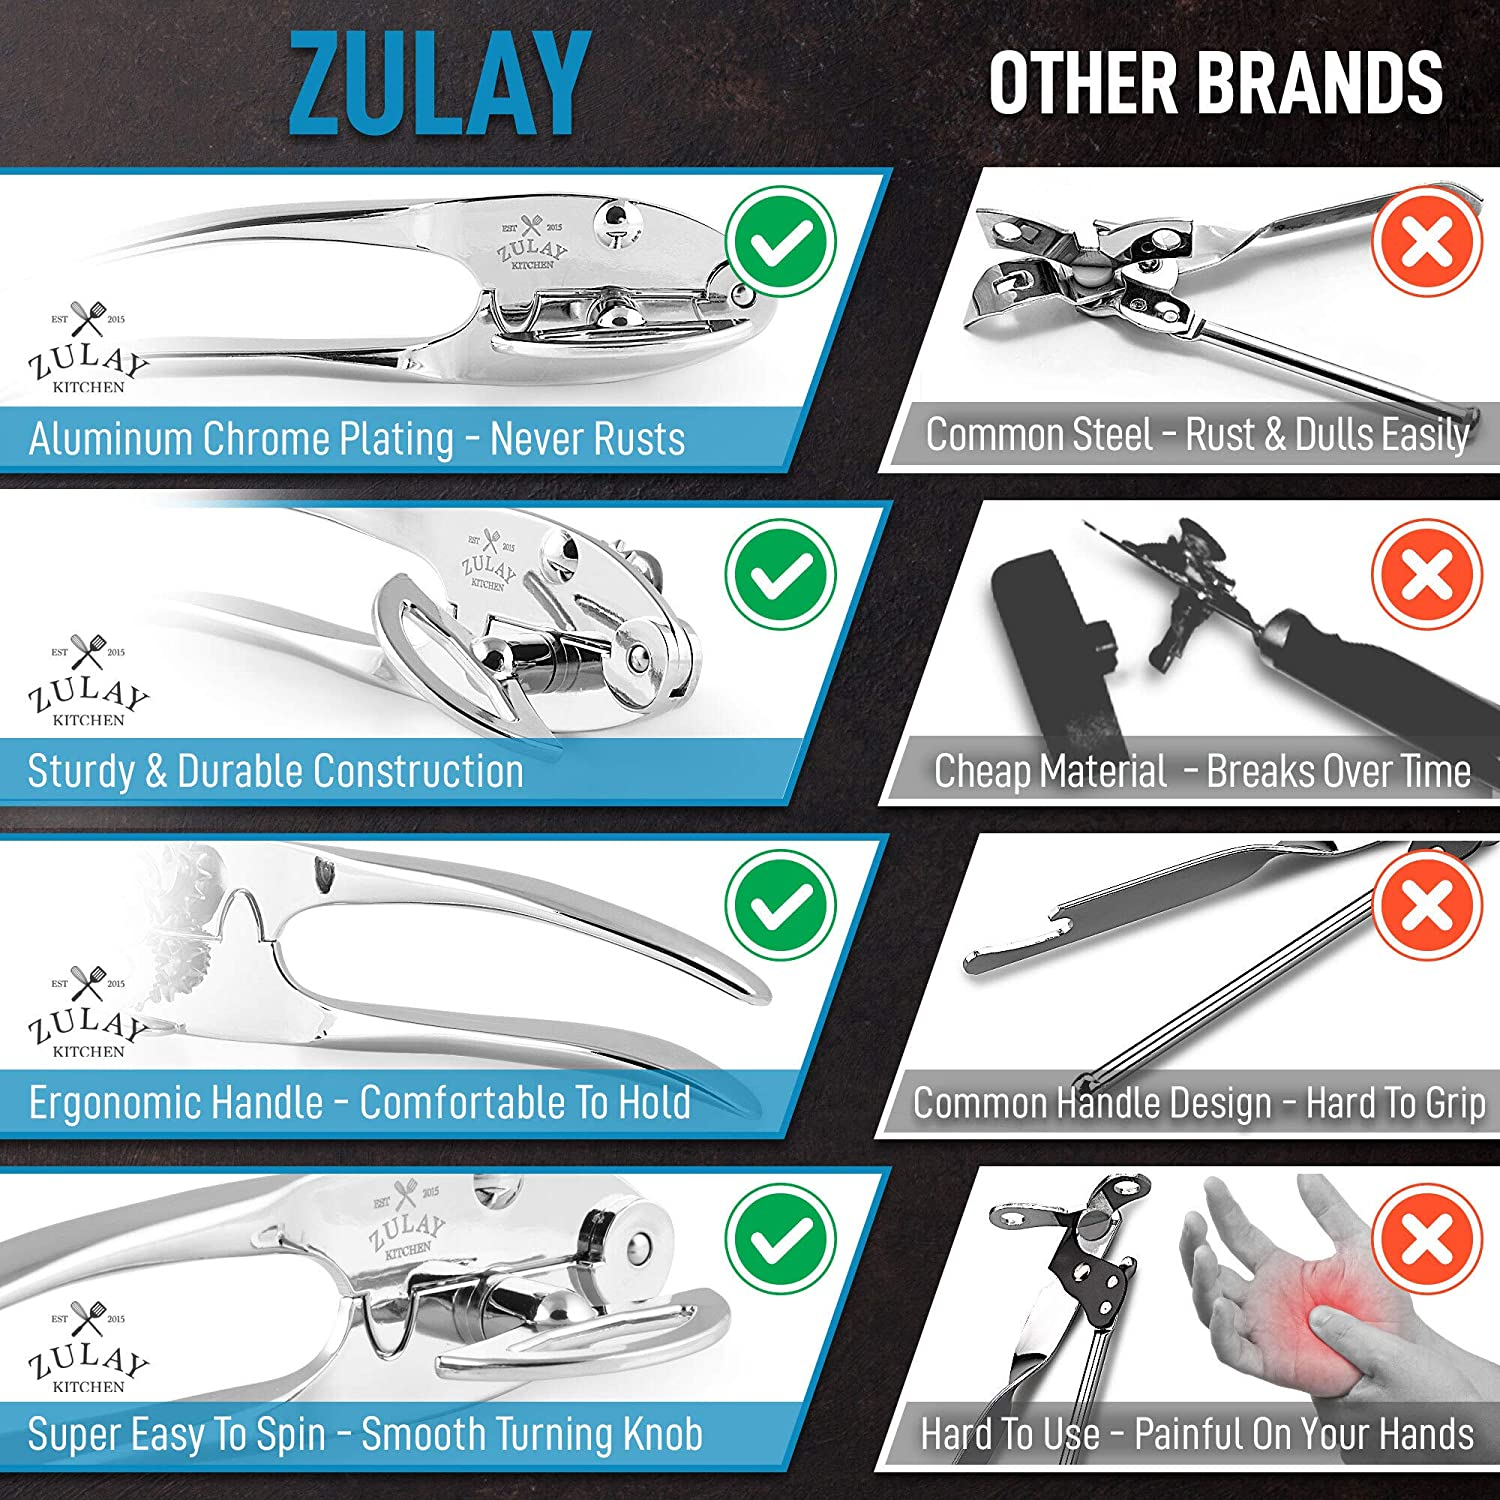 Easy To Turn Knob Durable Handheld Can Opener Premium Grade Construction Hand Can Opener Zulay Kitchen Manual Can Opener With Smooth Comfortable Grip Handle